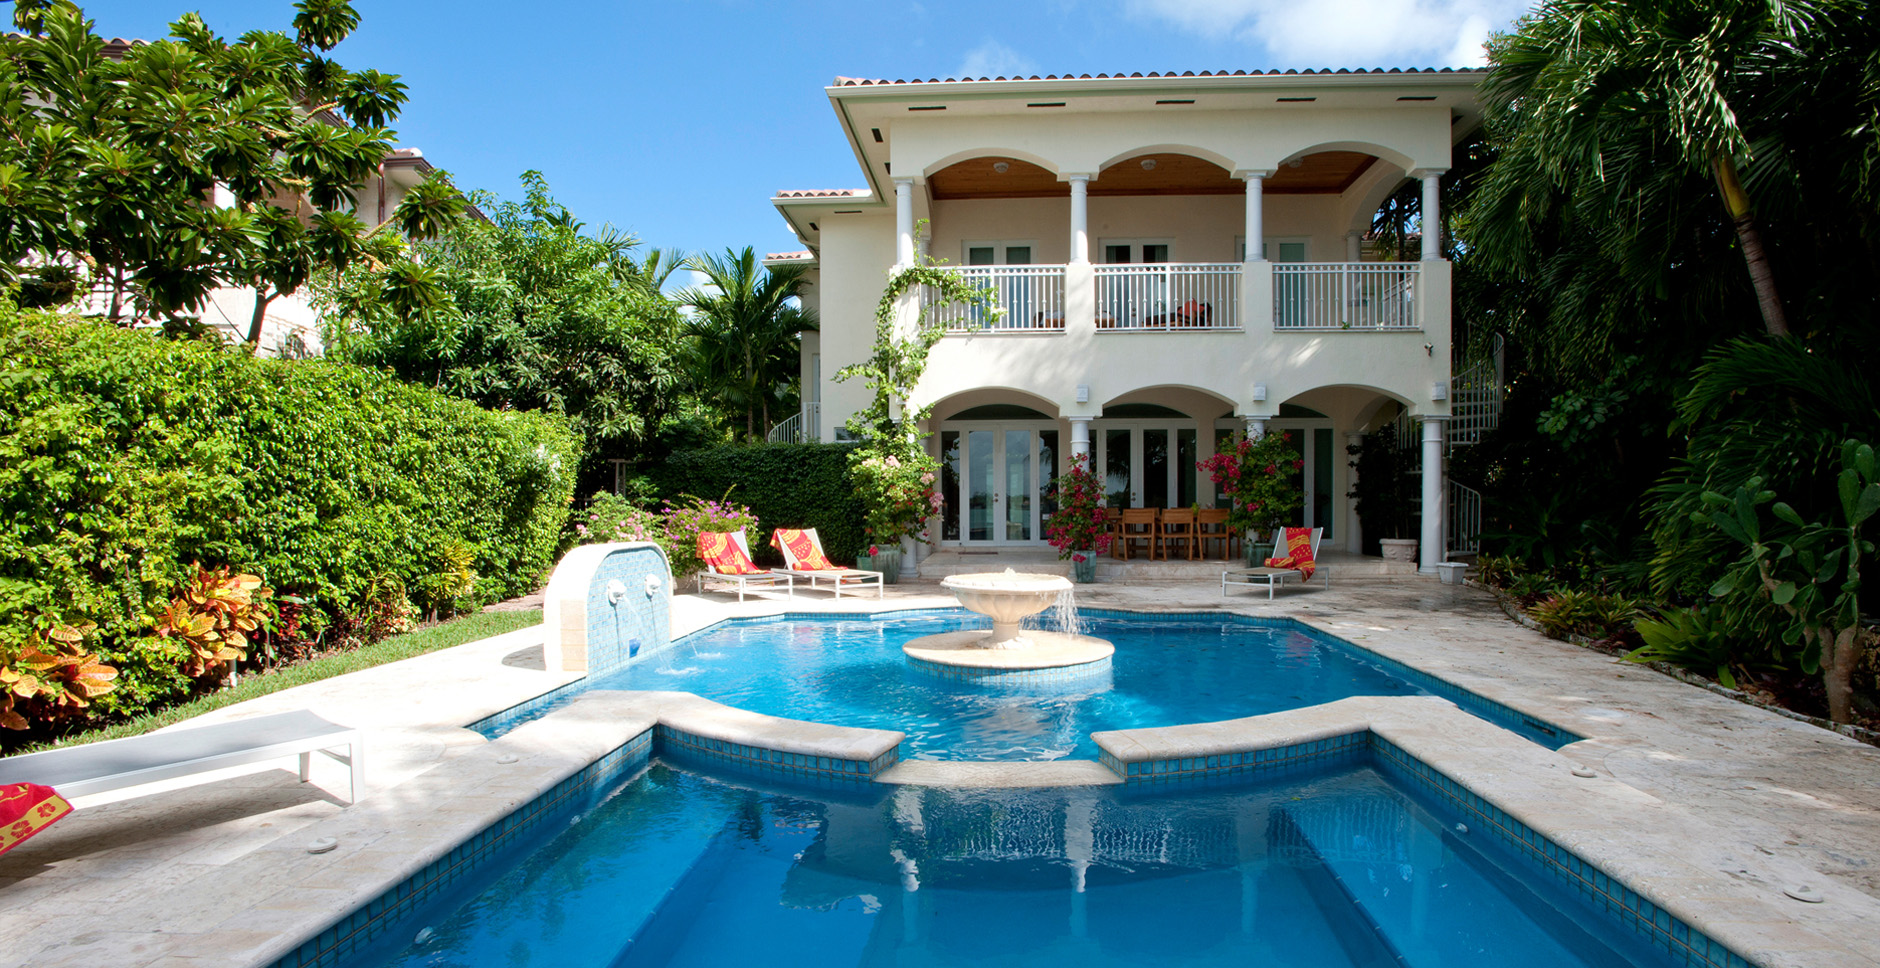 Villa Tranquility Miami Beach Vacation Rental